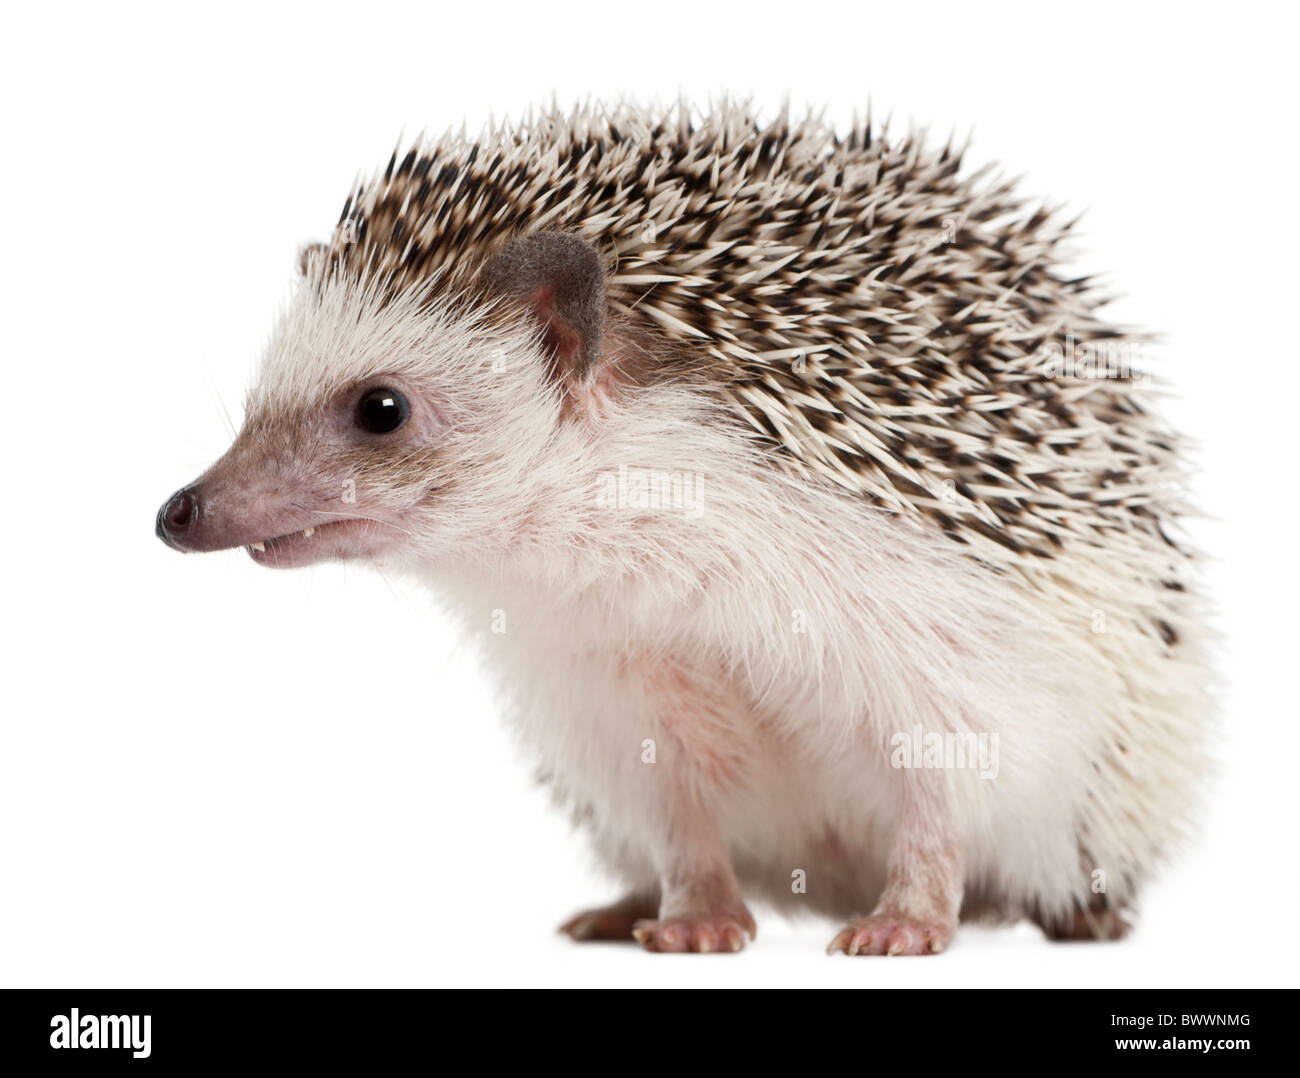 Four-toed Hedgehog, Atelerix albiventris, 2 years old, in front of white background - Stock Image